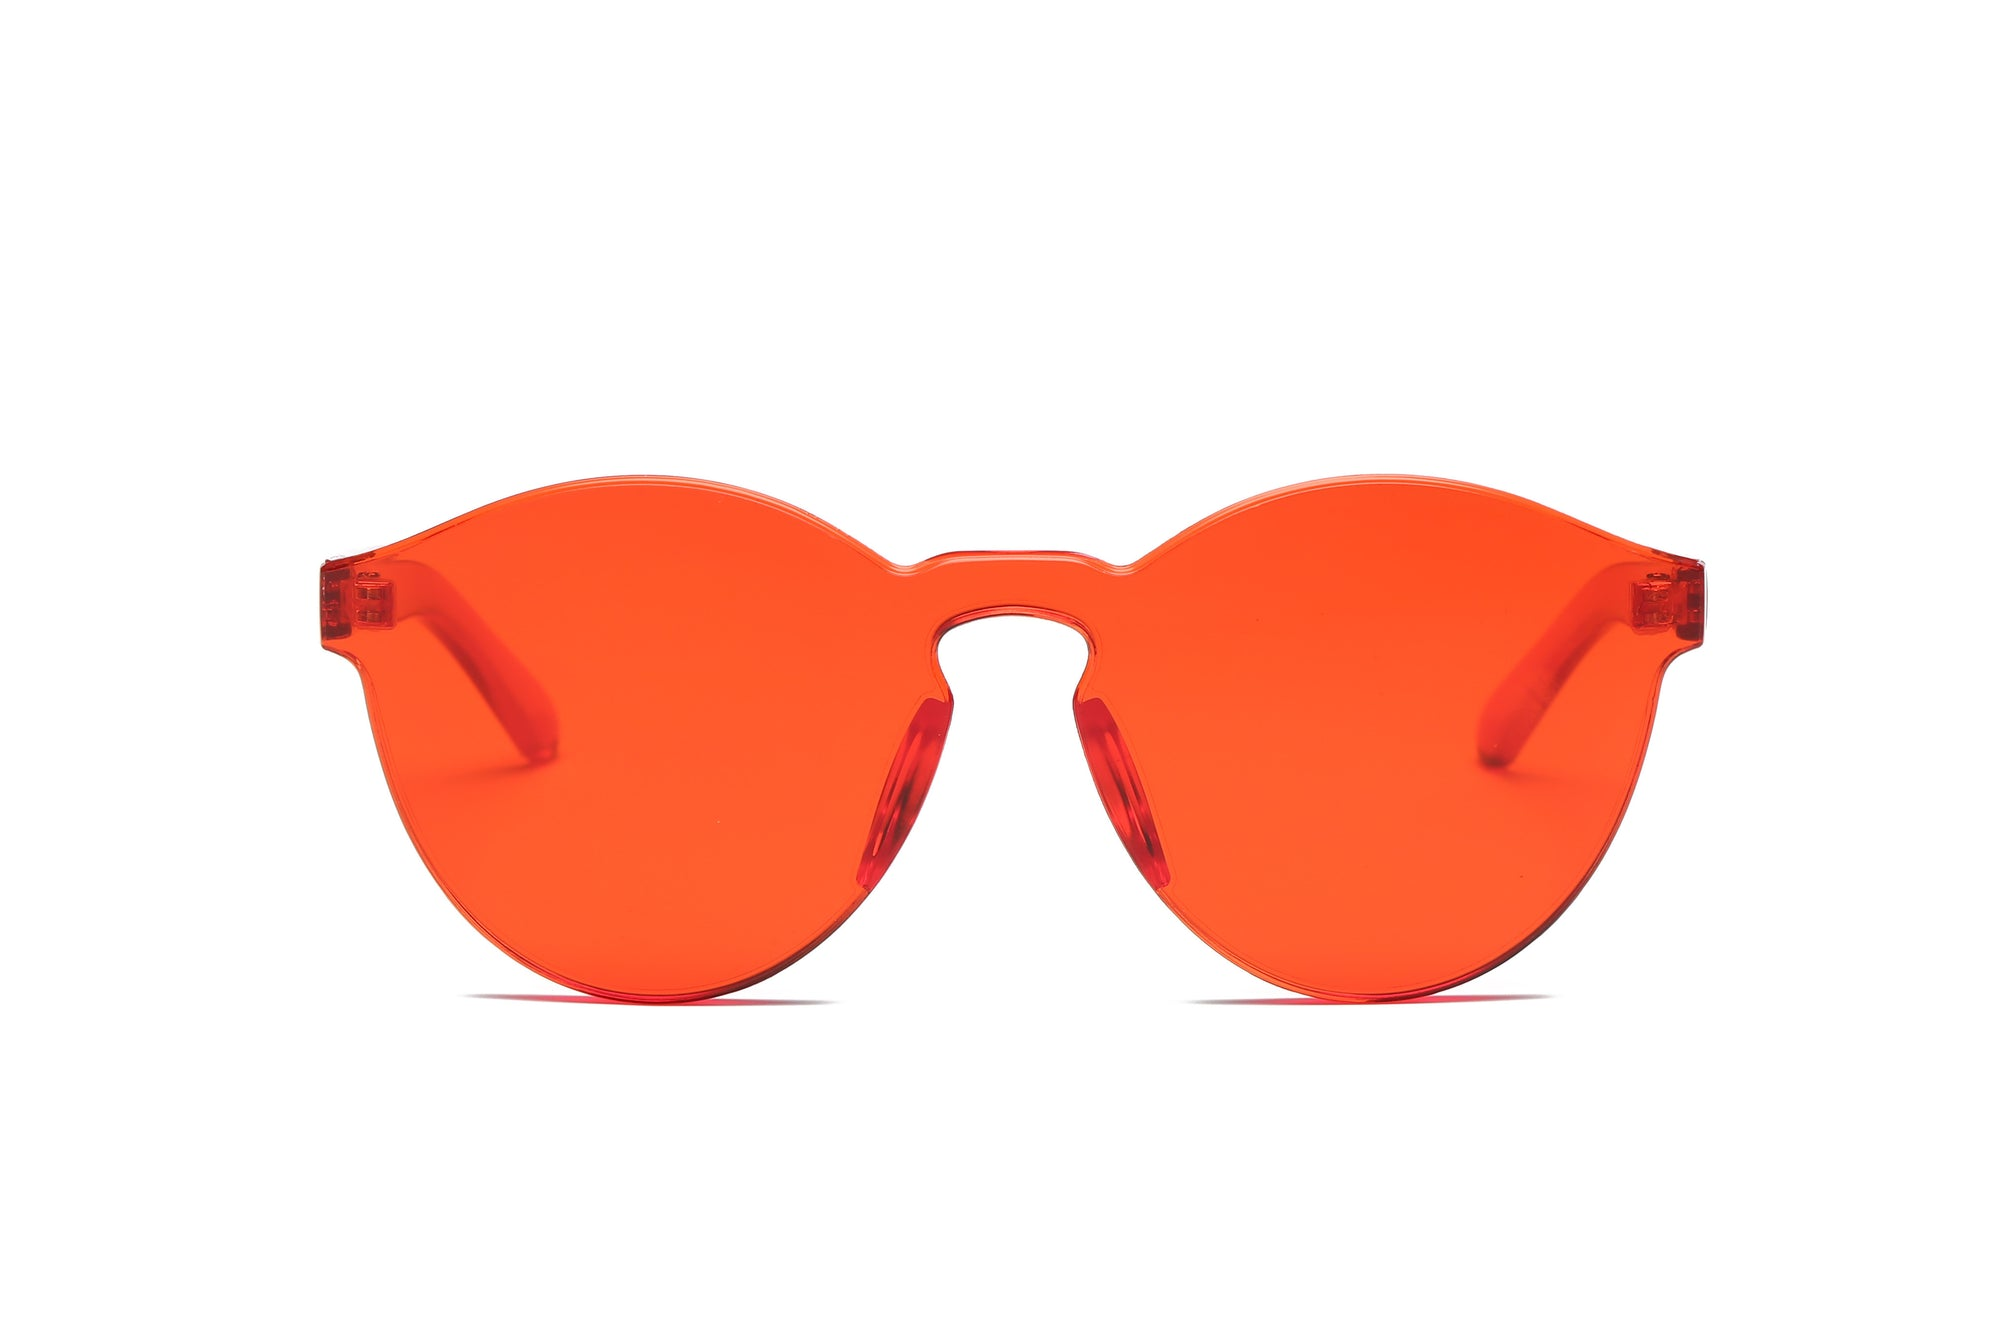 S2005 - Hipster Translucent Monochromatic Sunglasses - Wholesale Sunglasses and glasses